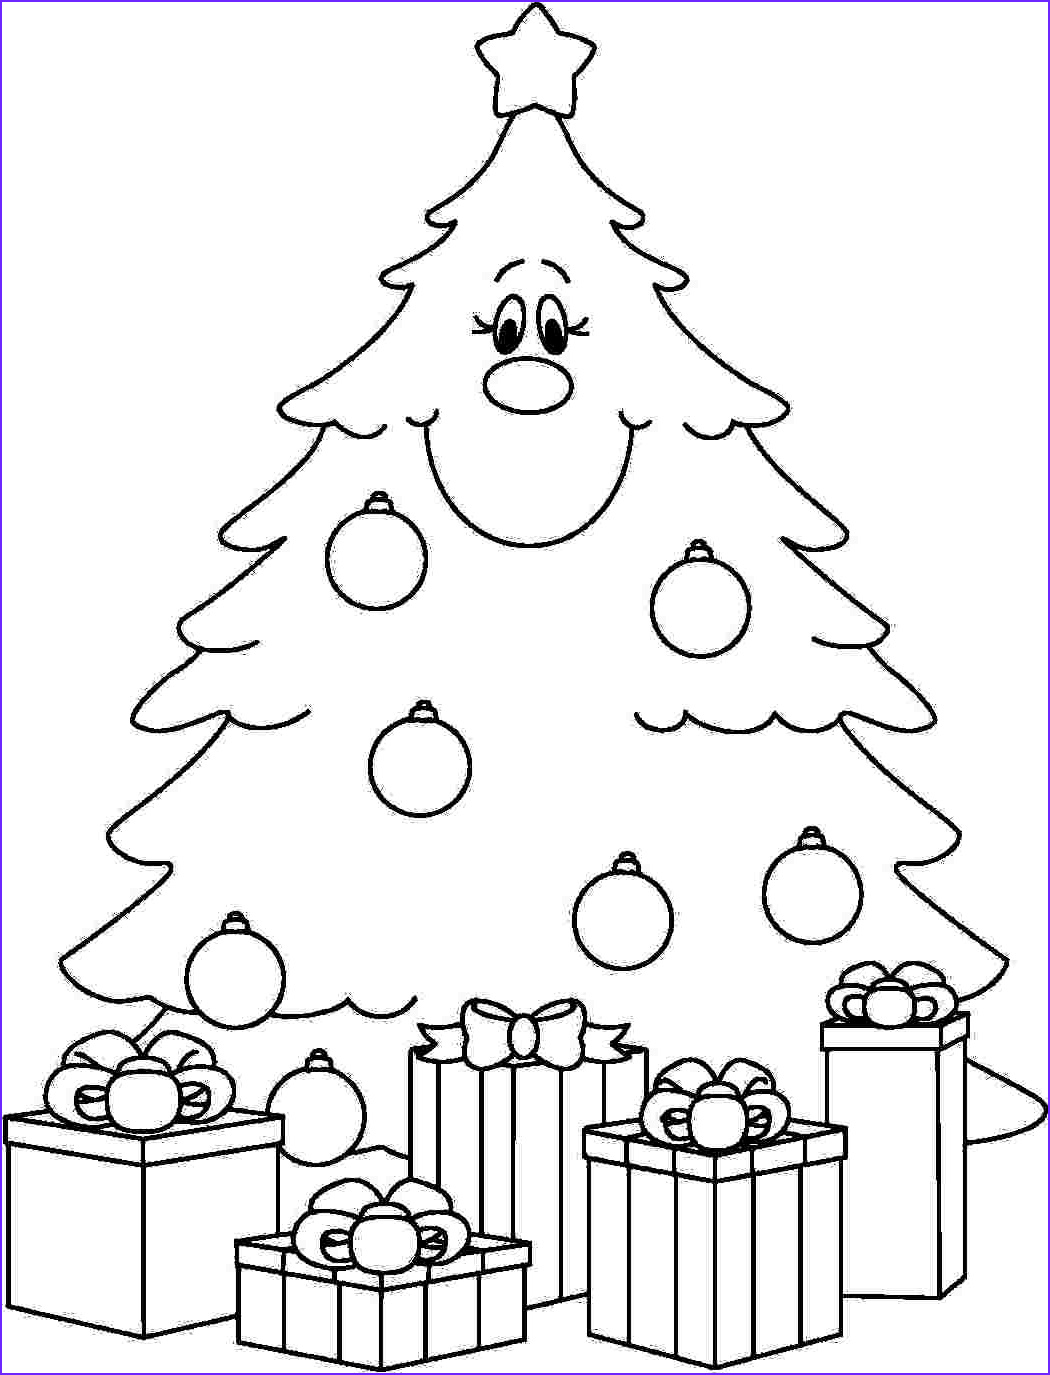 Coloring Pages Of Christmas Trees Elegant Images Under the Christmas Tree Eit Digital